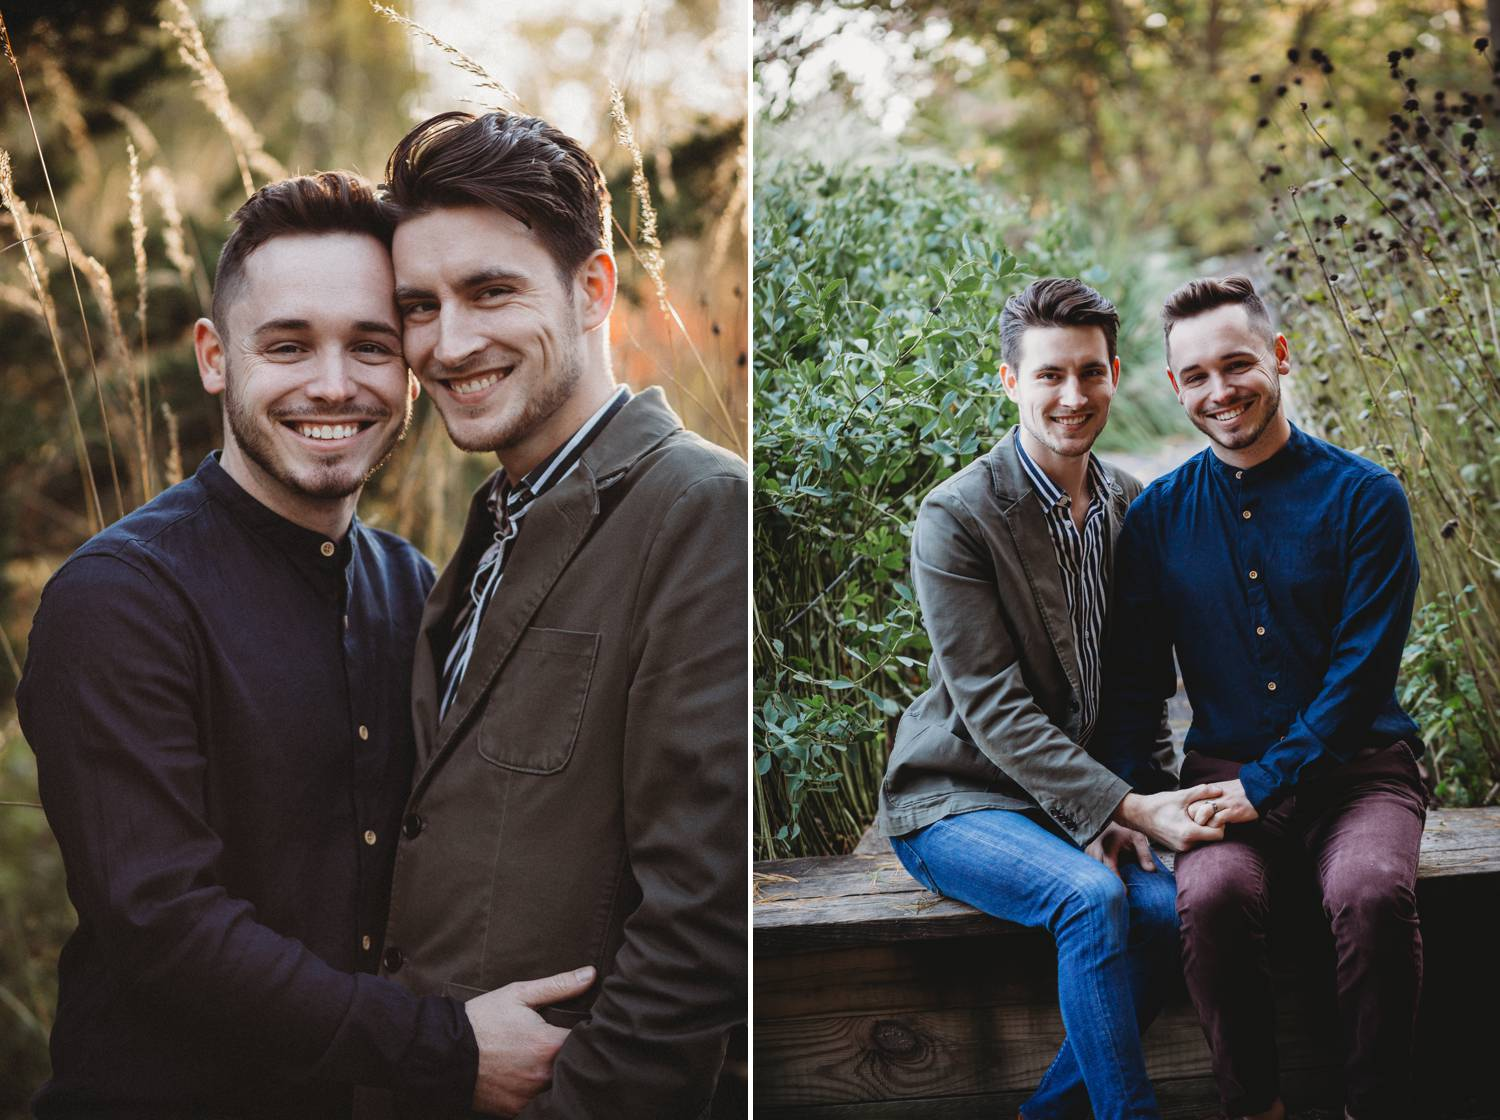 Two engaged men smile for the camera while snuggled close in a lush park